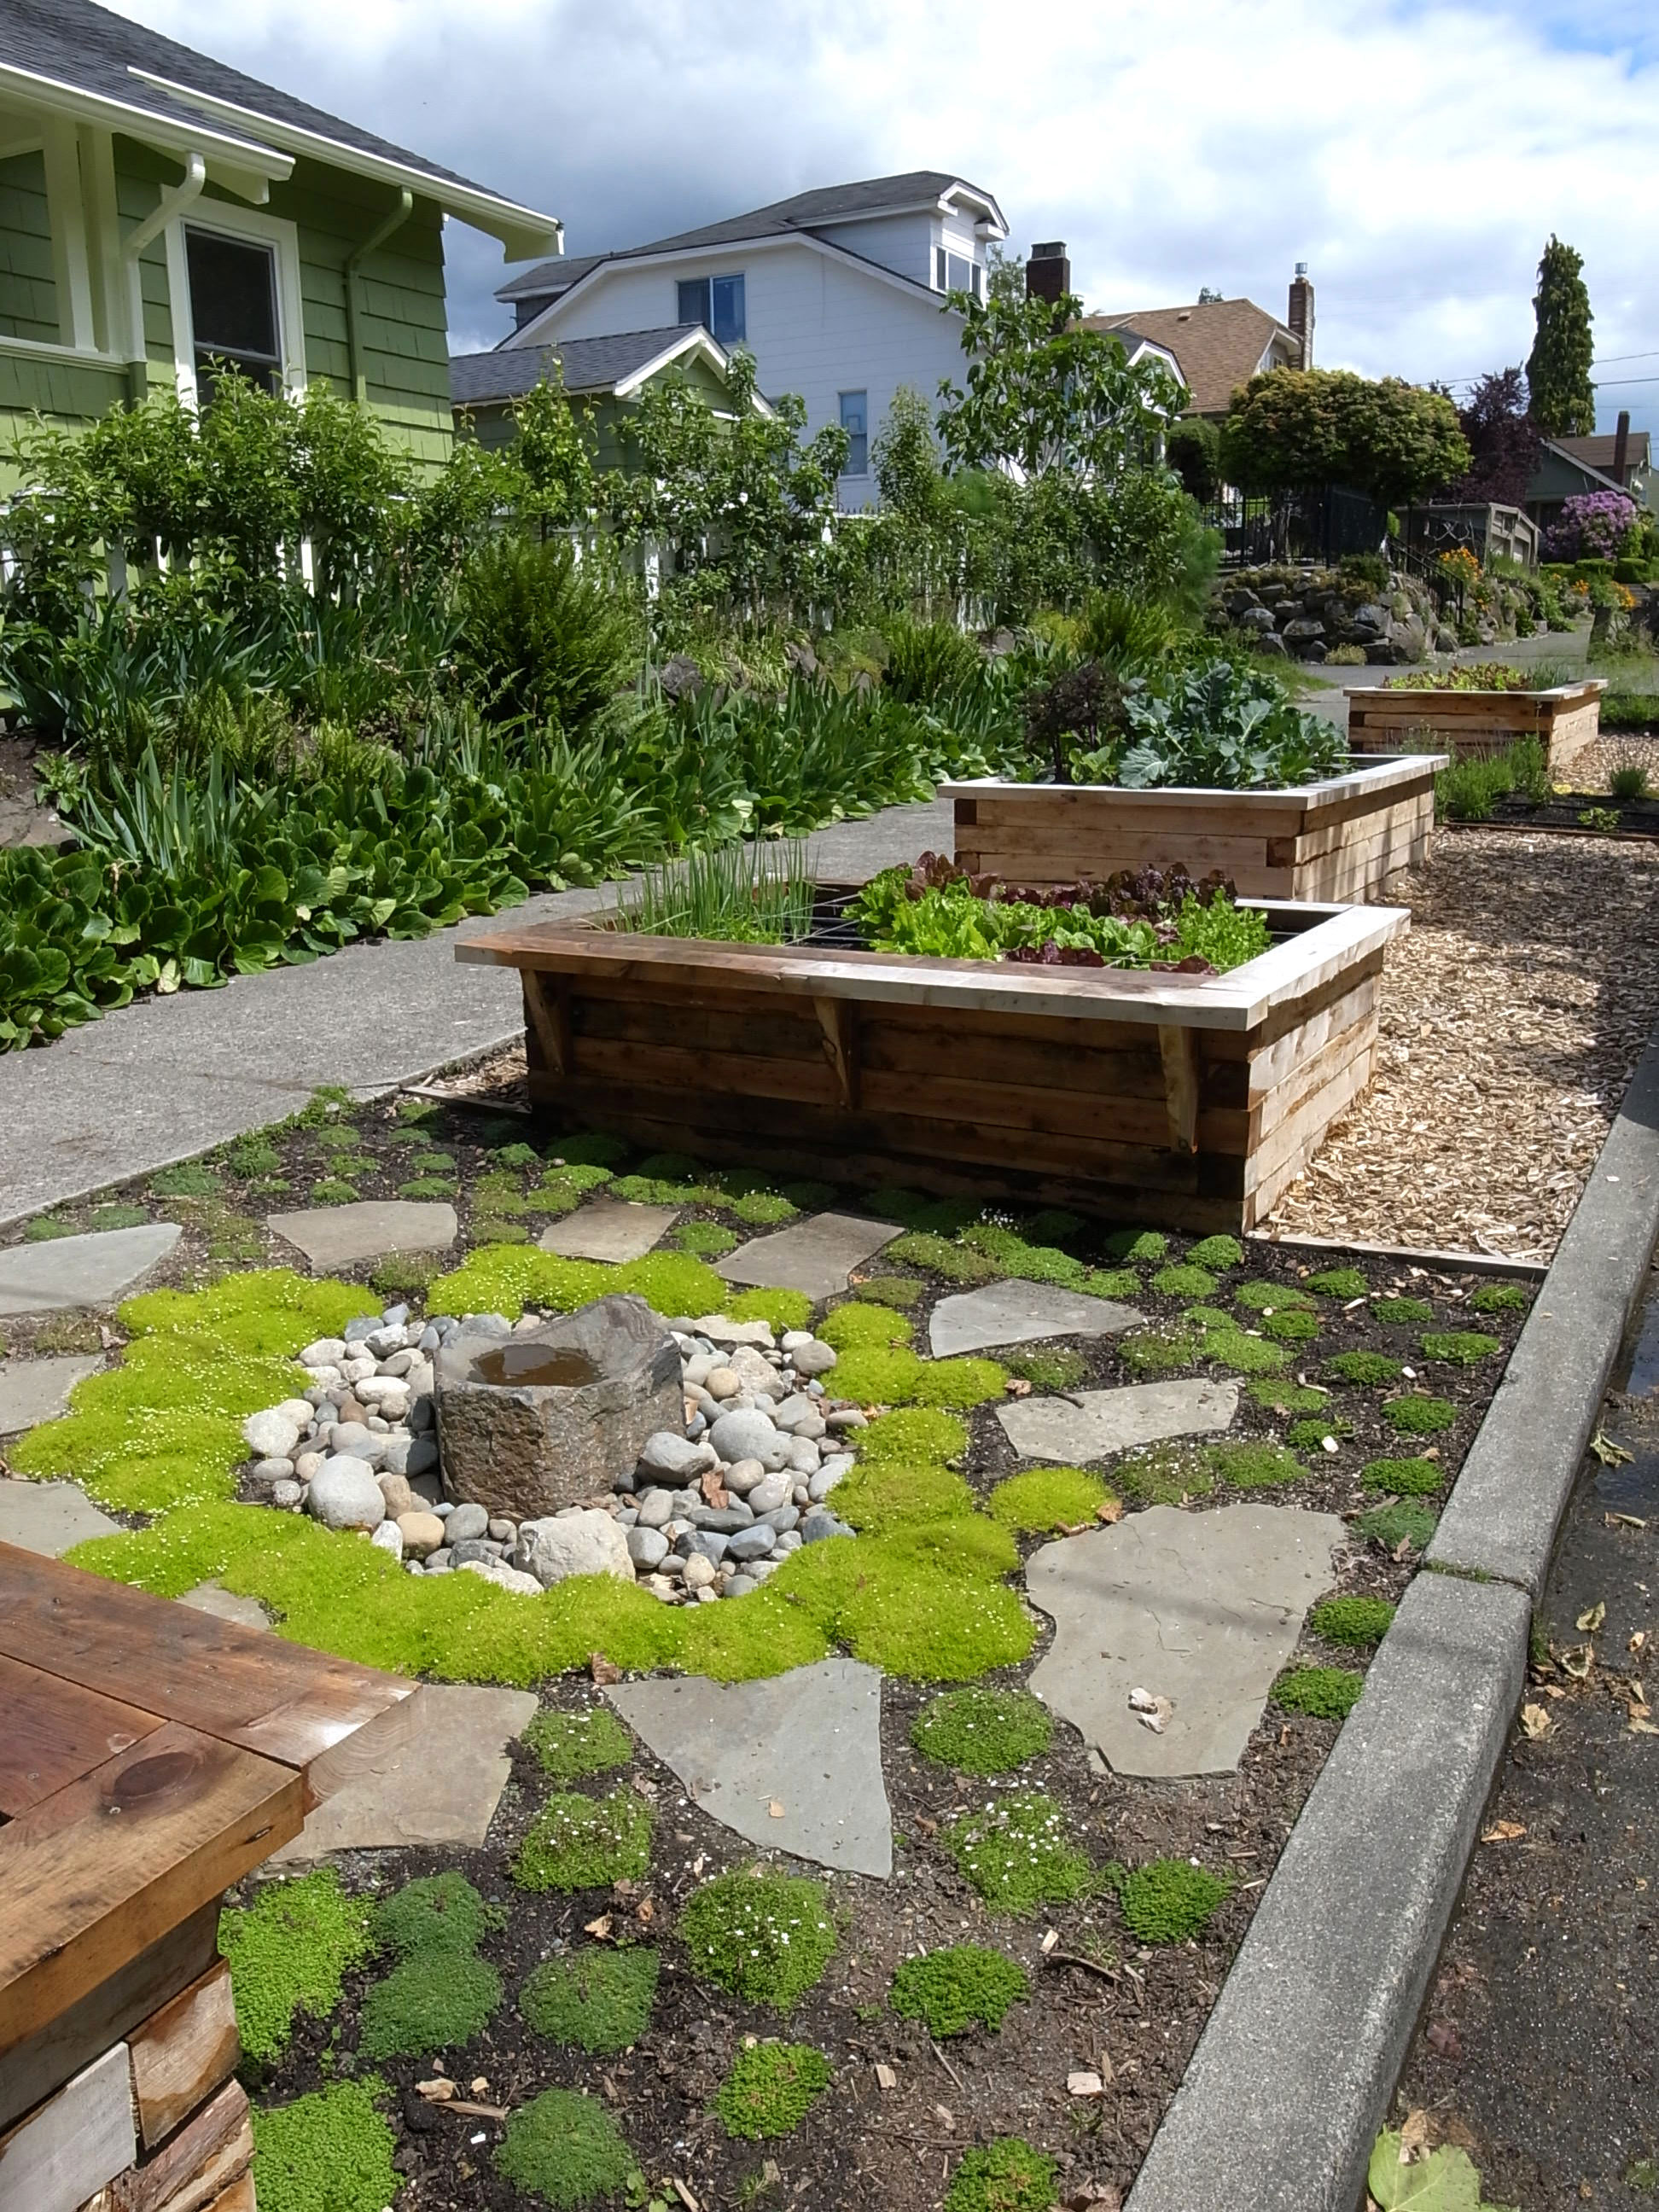 Edible Landscaping Ideas for Front Yard - Sunset - Sunset ...